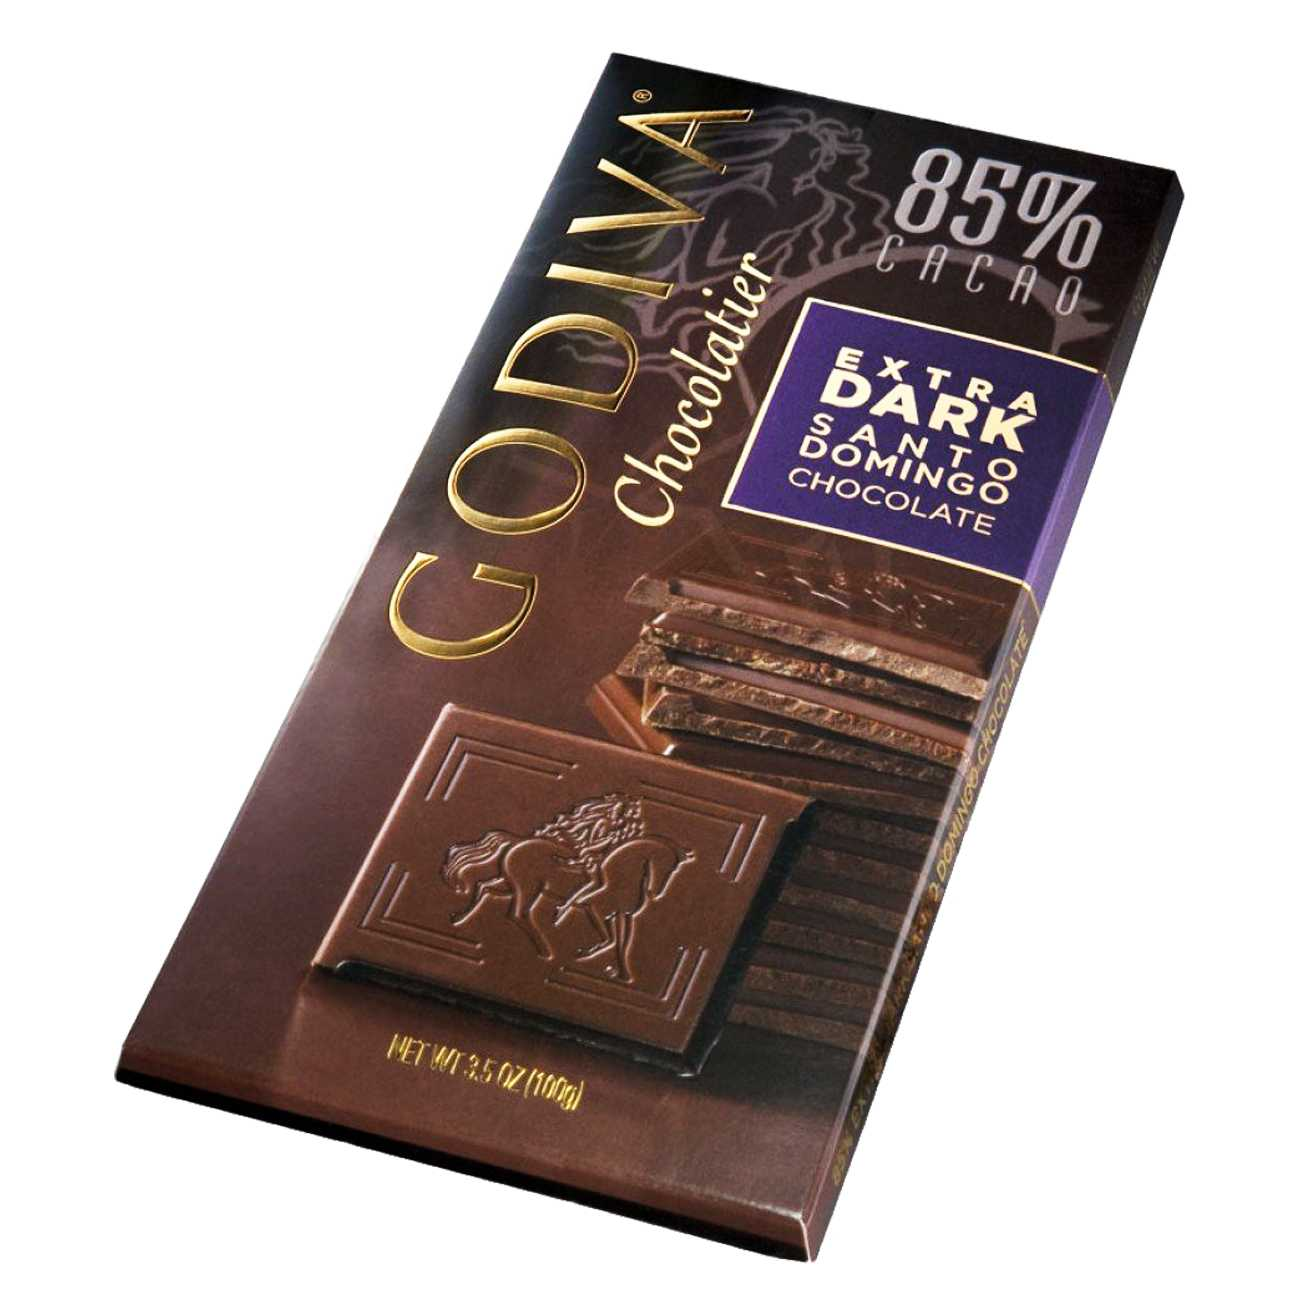 EXTRA DARK SANTO DOMINGO CHOCOLATE 100 G